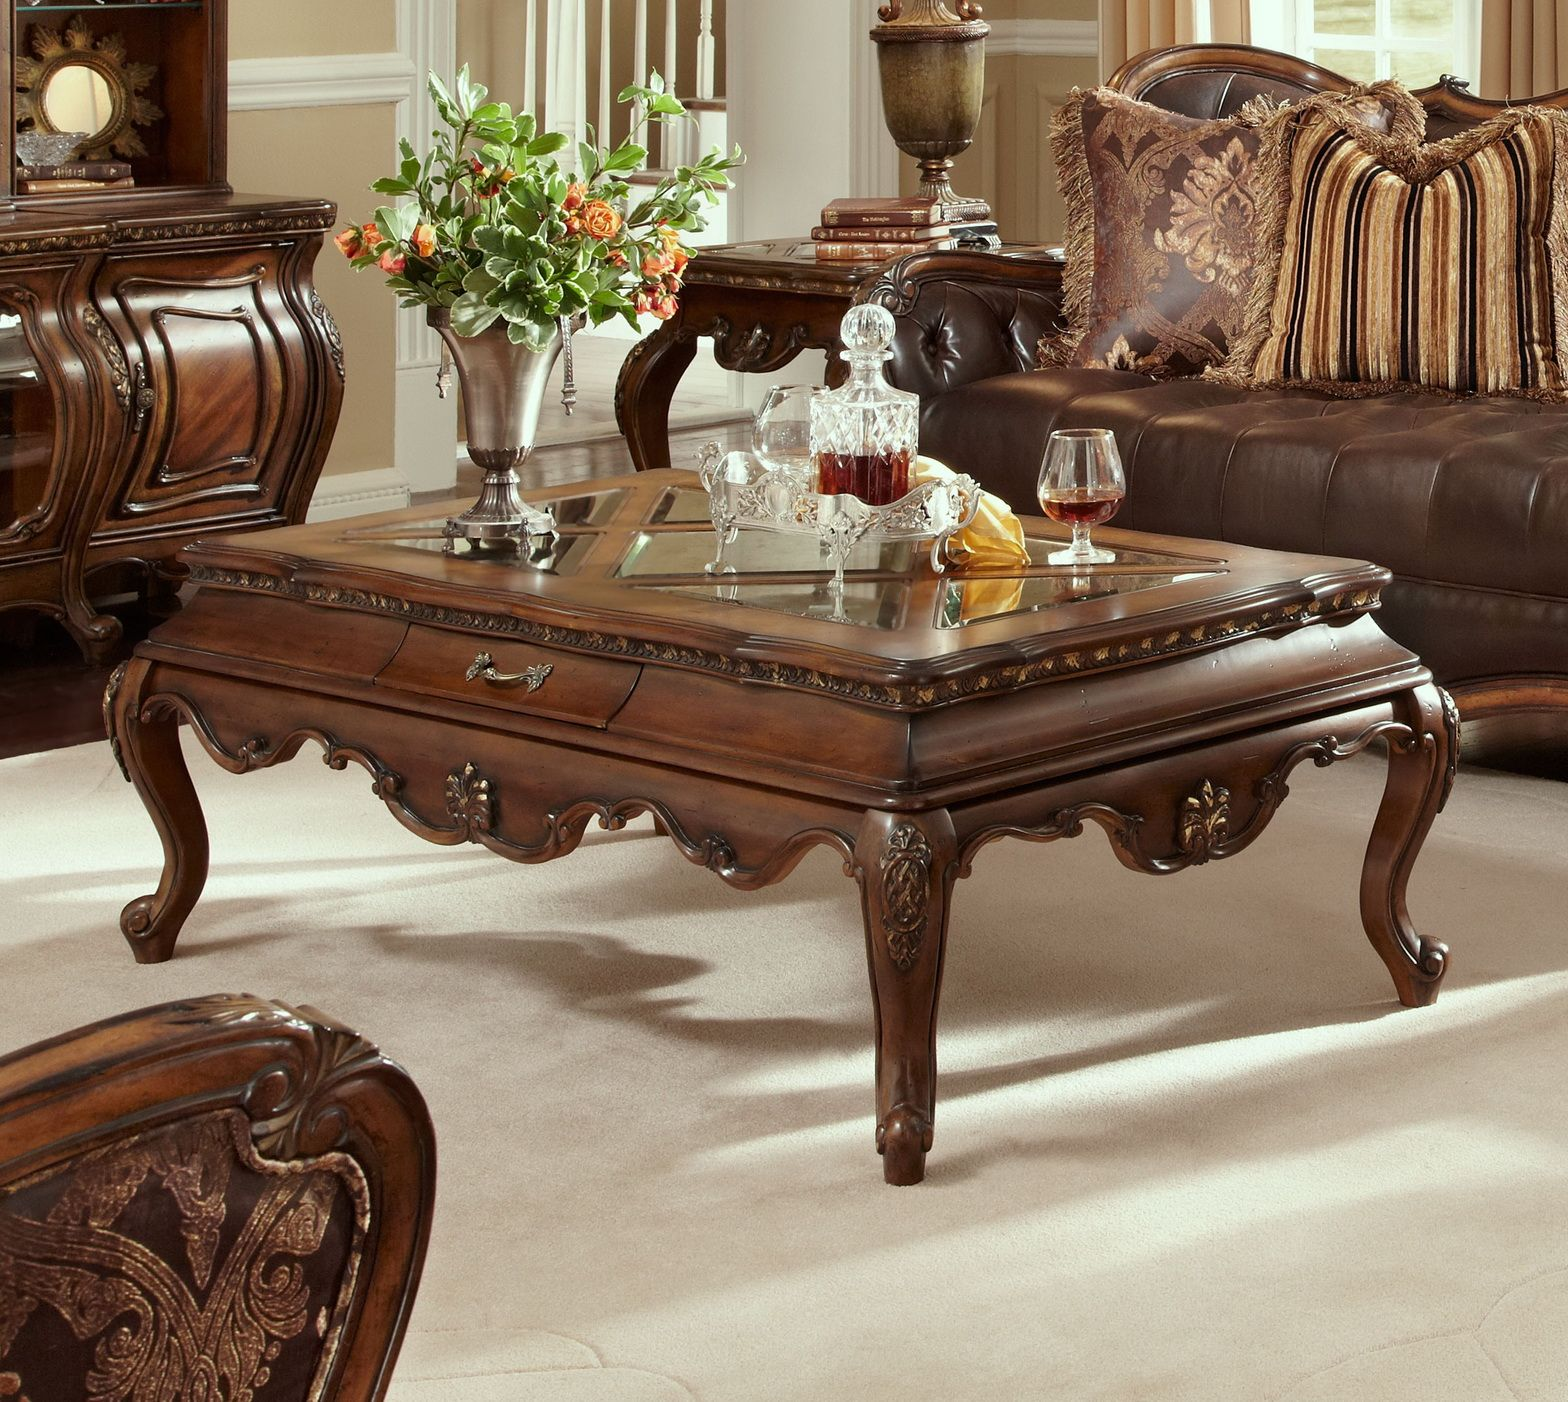 Lavelle Melange 2 Pc Occasional Table Set By Aico Coffee Table Living Room Coffee Table Decor